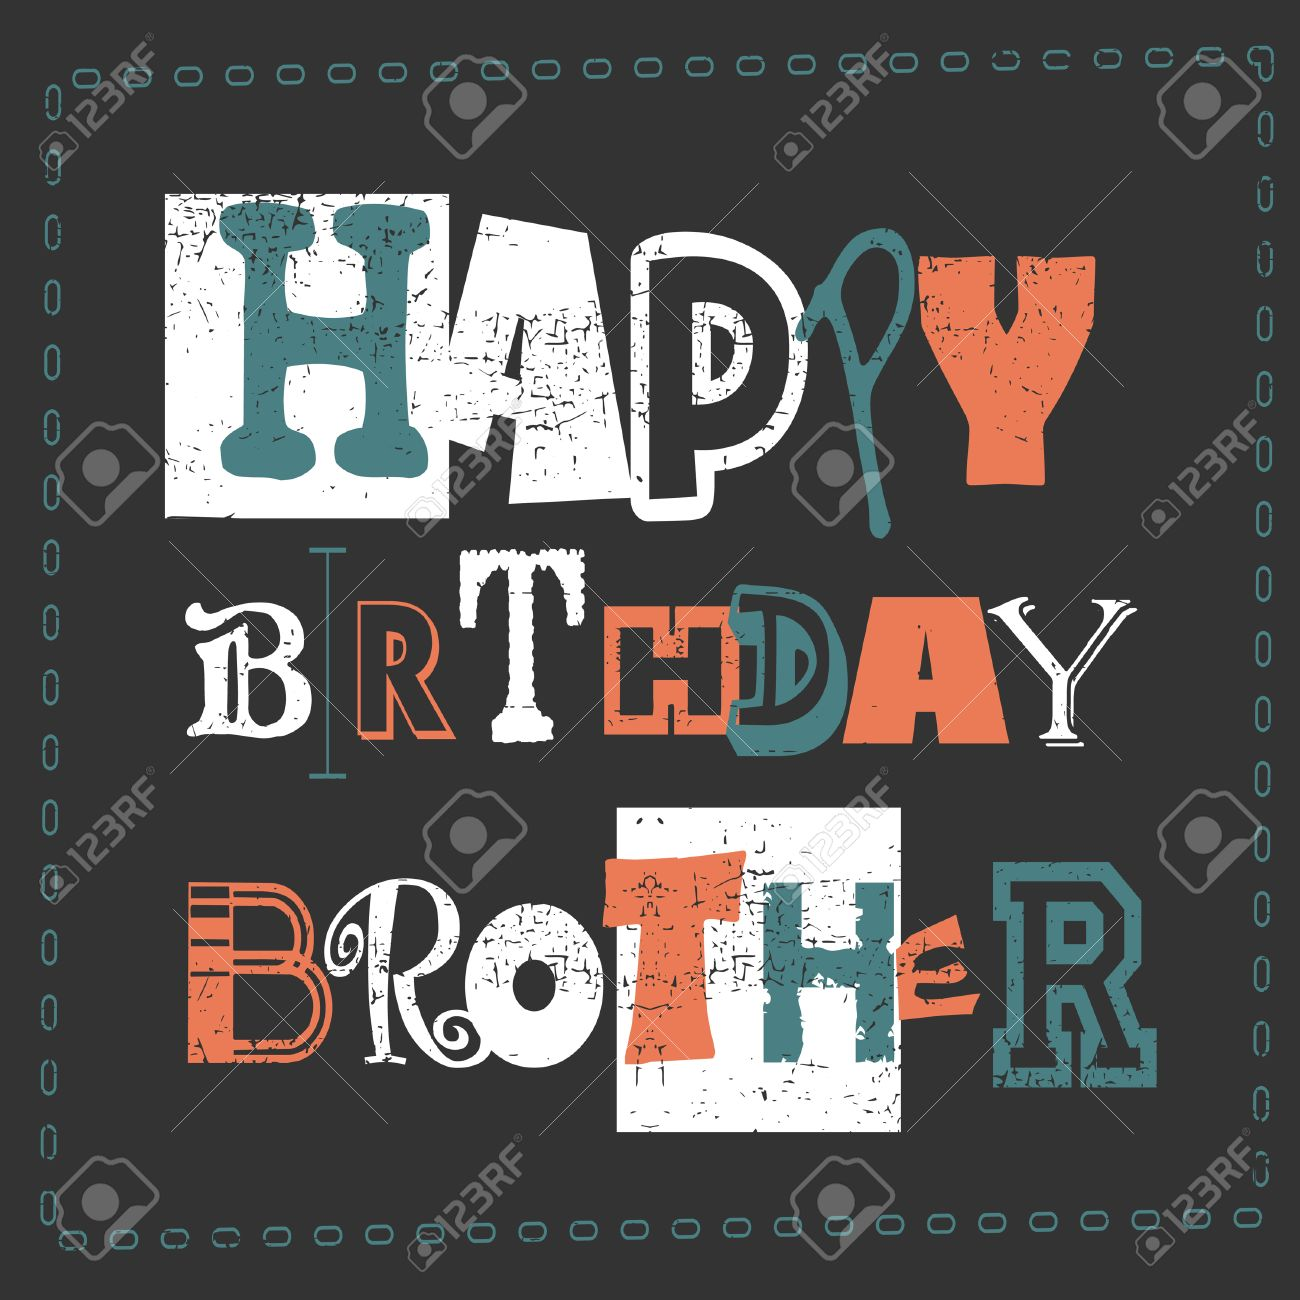 birthday card design for brother ; 57012646-happy-birthday-card-happy-birthday-brother-vector-illustration